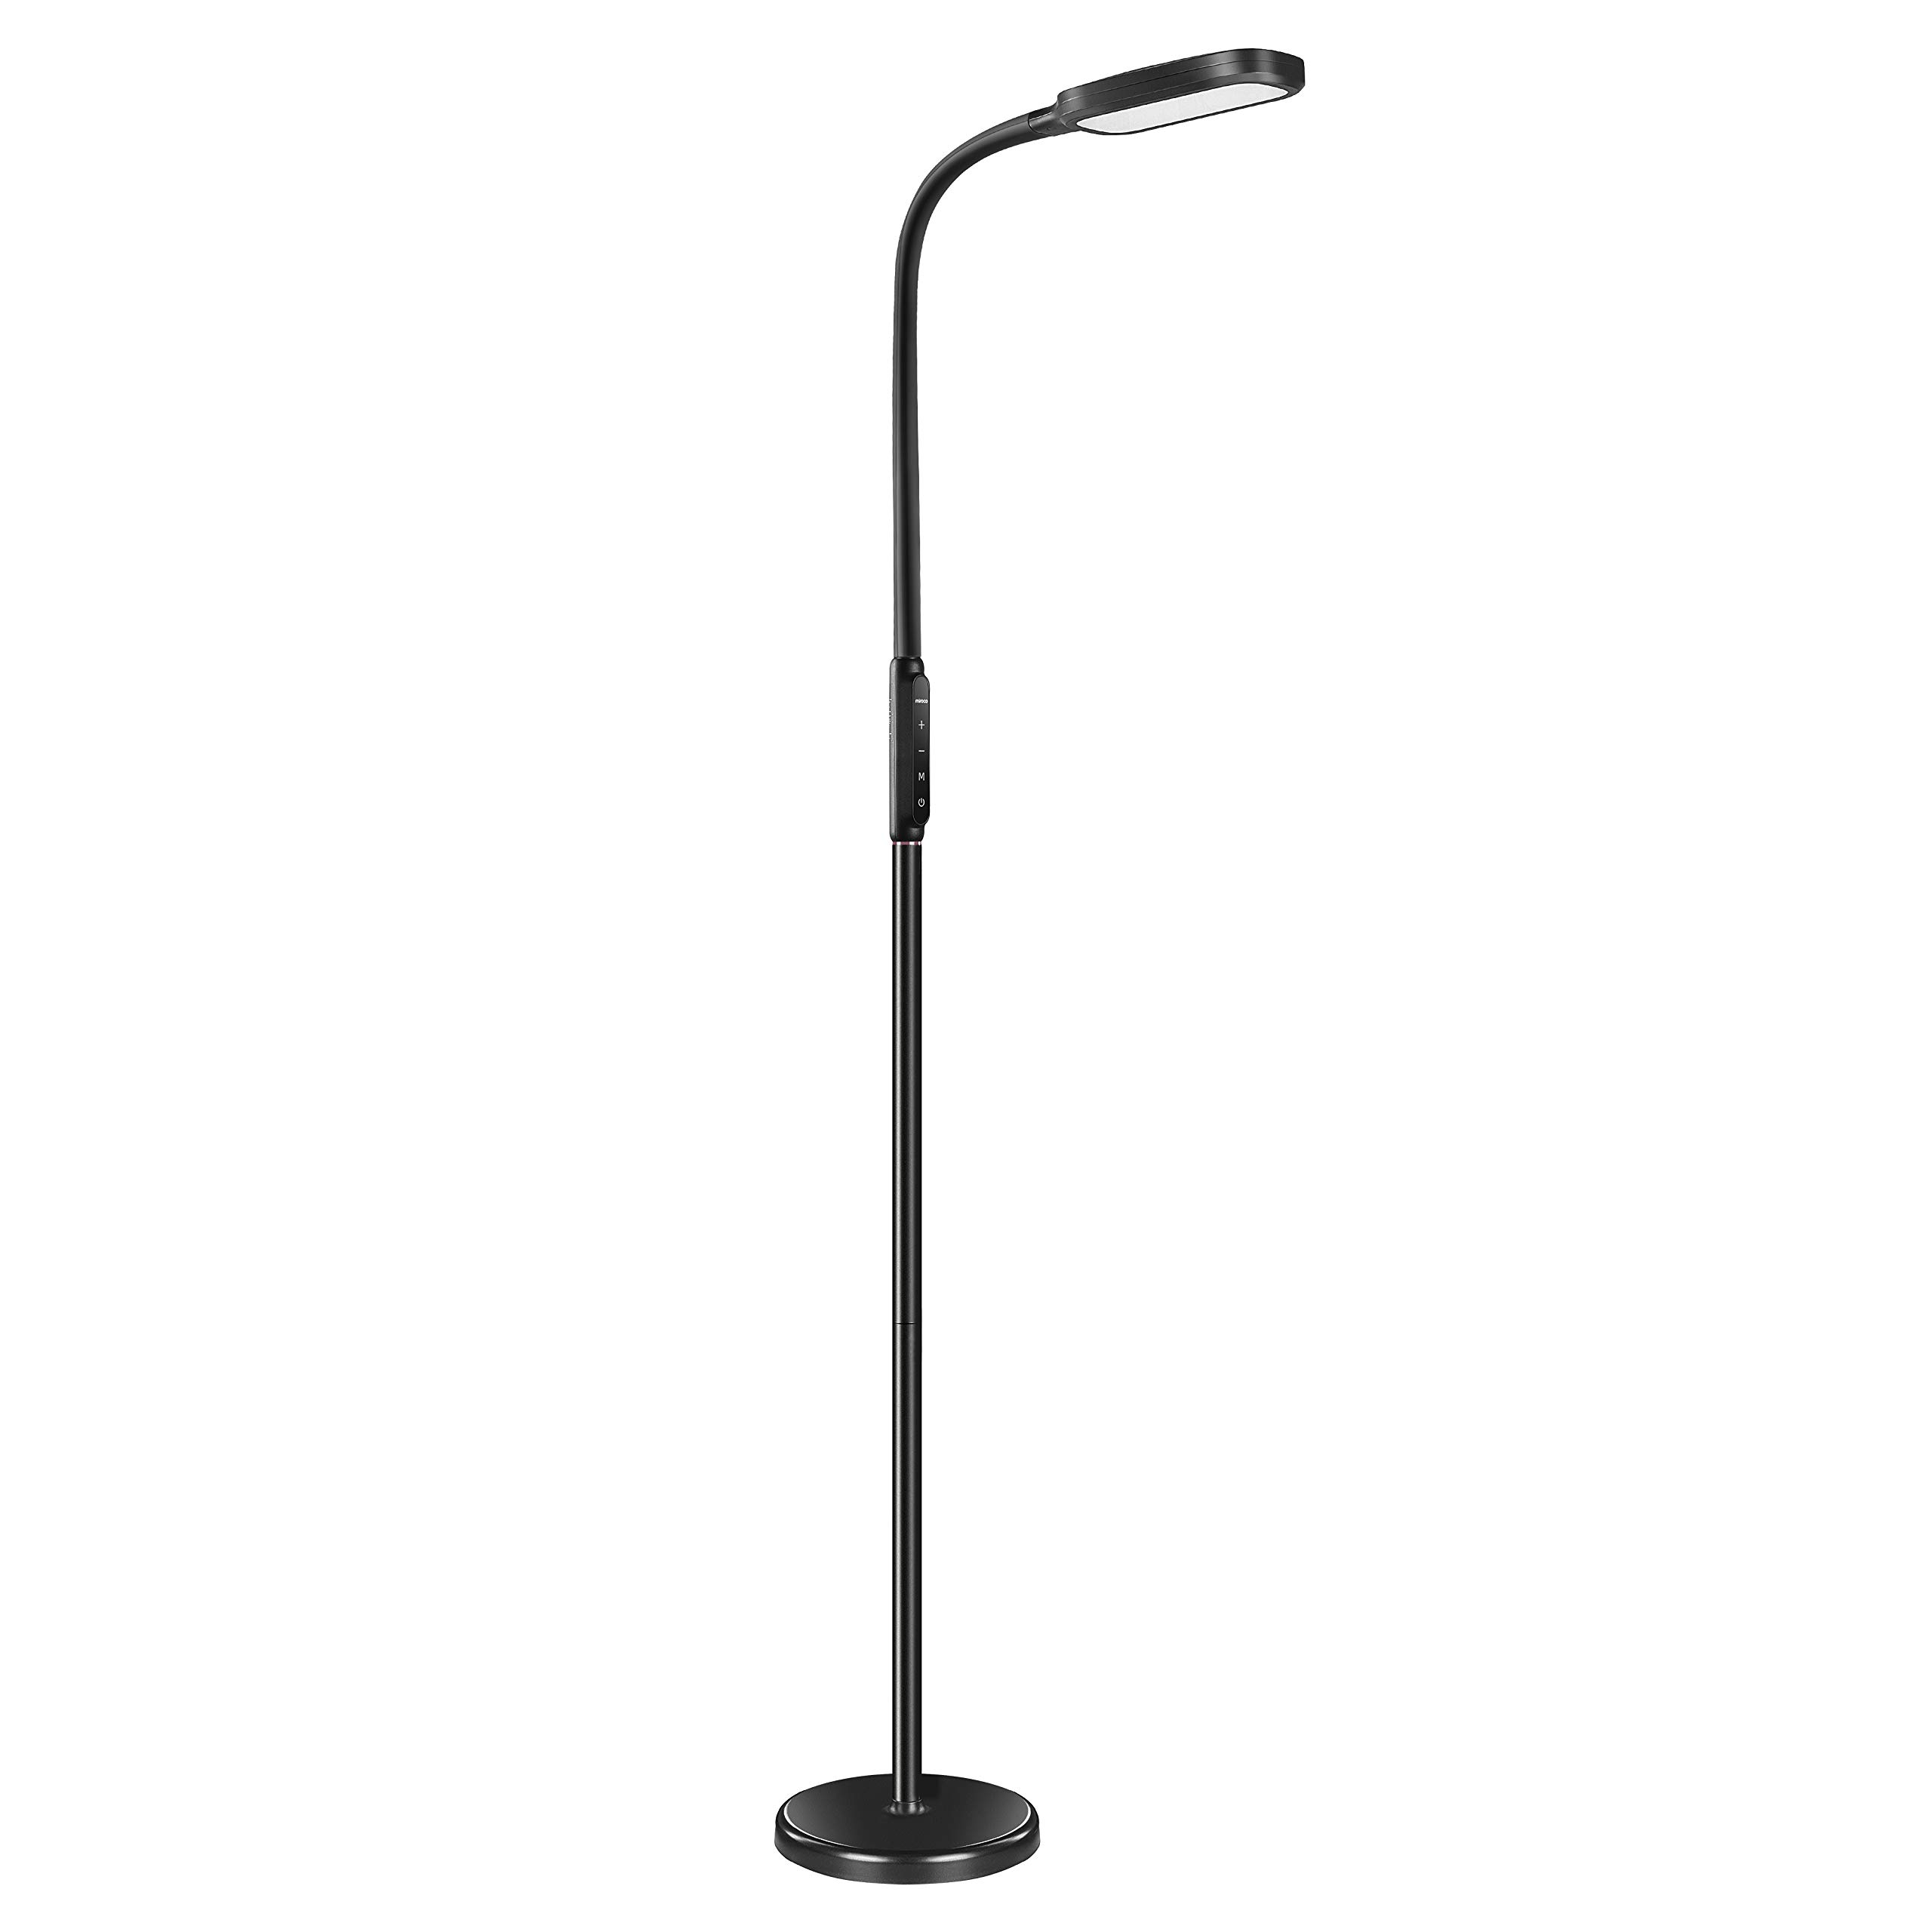 Miroco LED Floor Lamp with 5 Brightness Levels & 3 Color Temperatures, 1815 Lumens, Adjustable LED Floor Light, Dimmable…